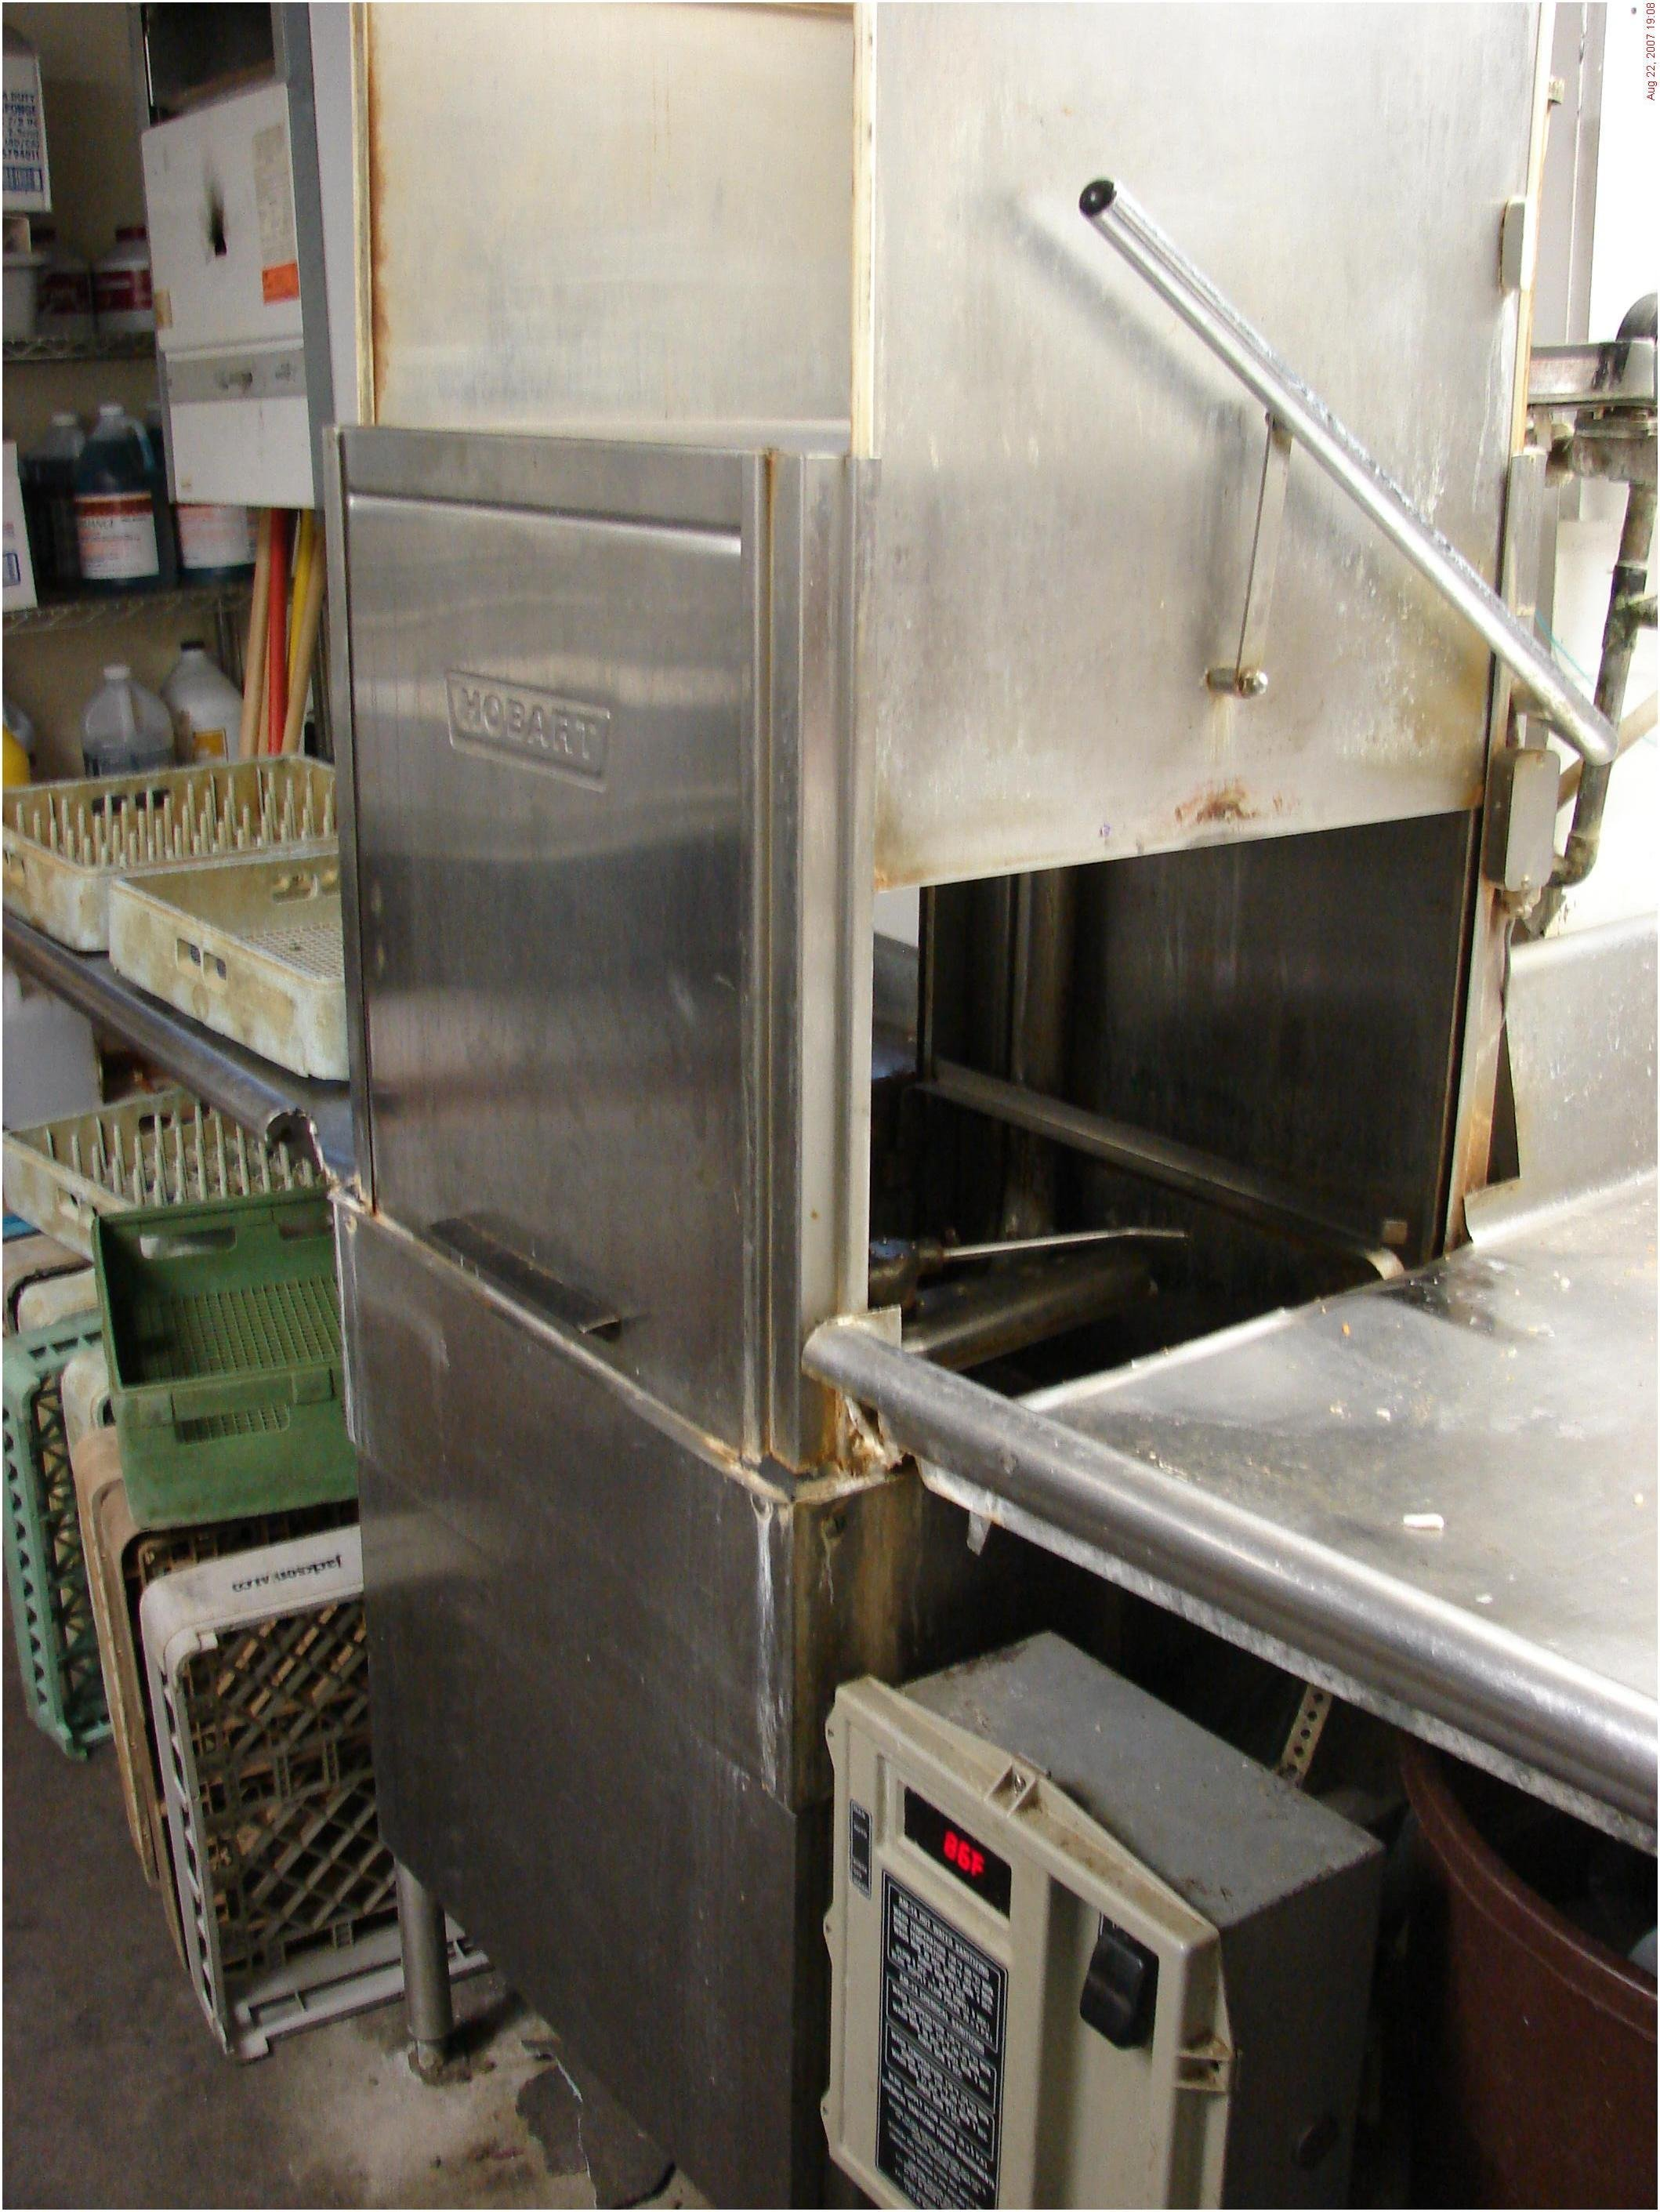 HOBART_DISHWASHER_2